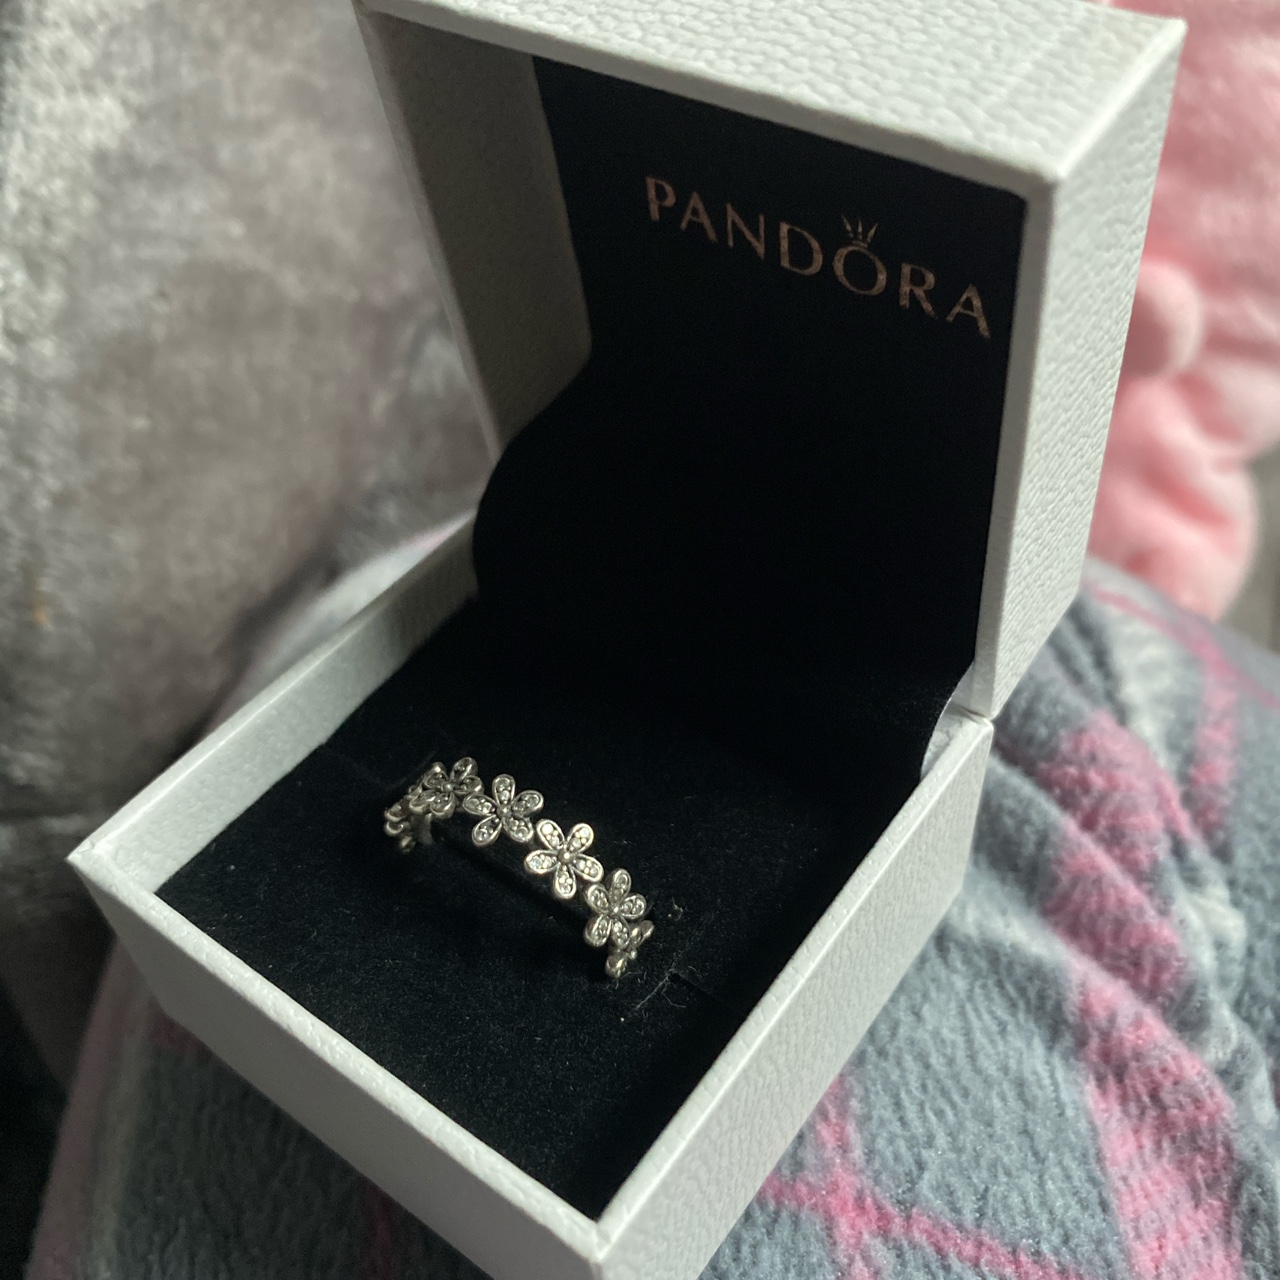 Product Image 1 - The flower Pandora ring  Was